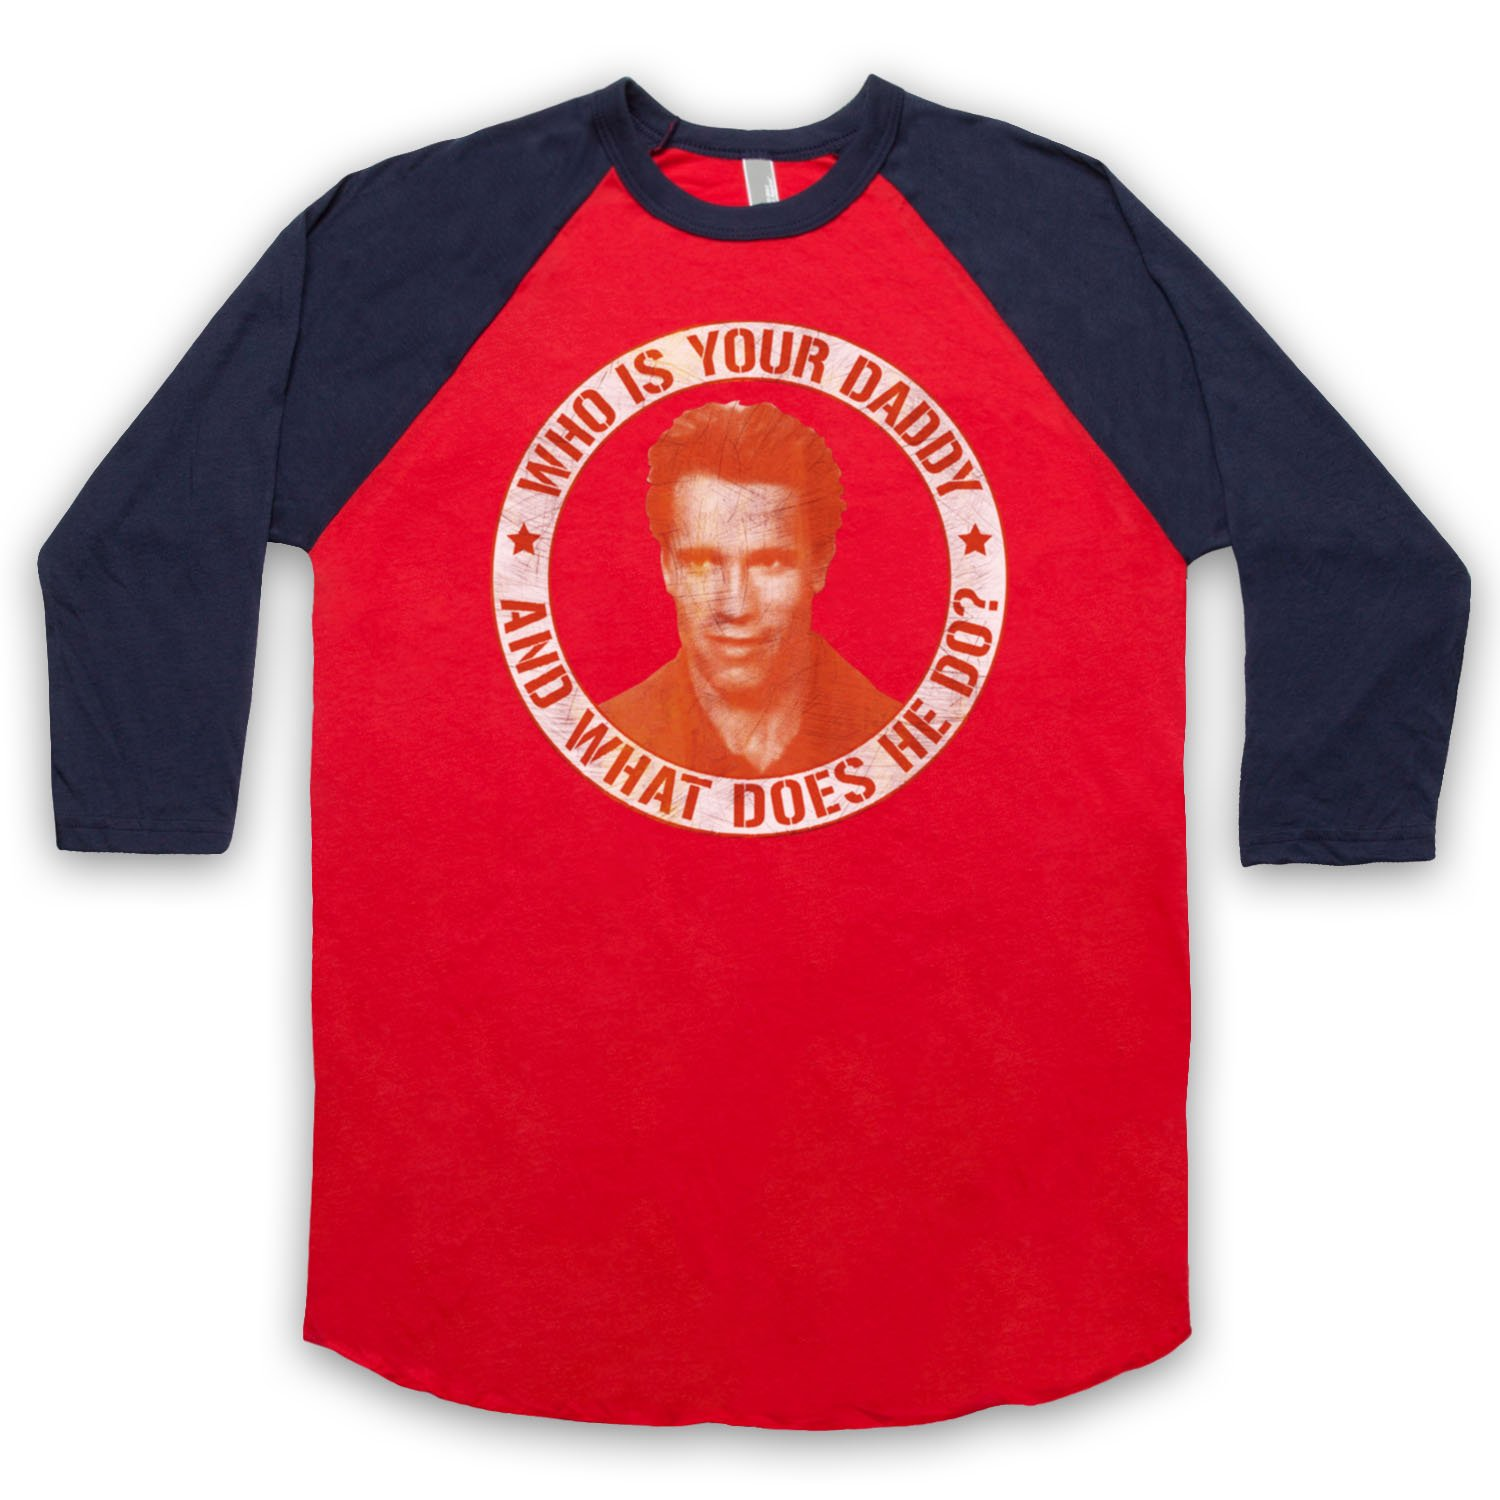 Inspired by Kindergarten Cop Who Is Your Daddy And What Does He Do Unofficial 3/4 Sleeve Retro Baseball Tee